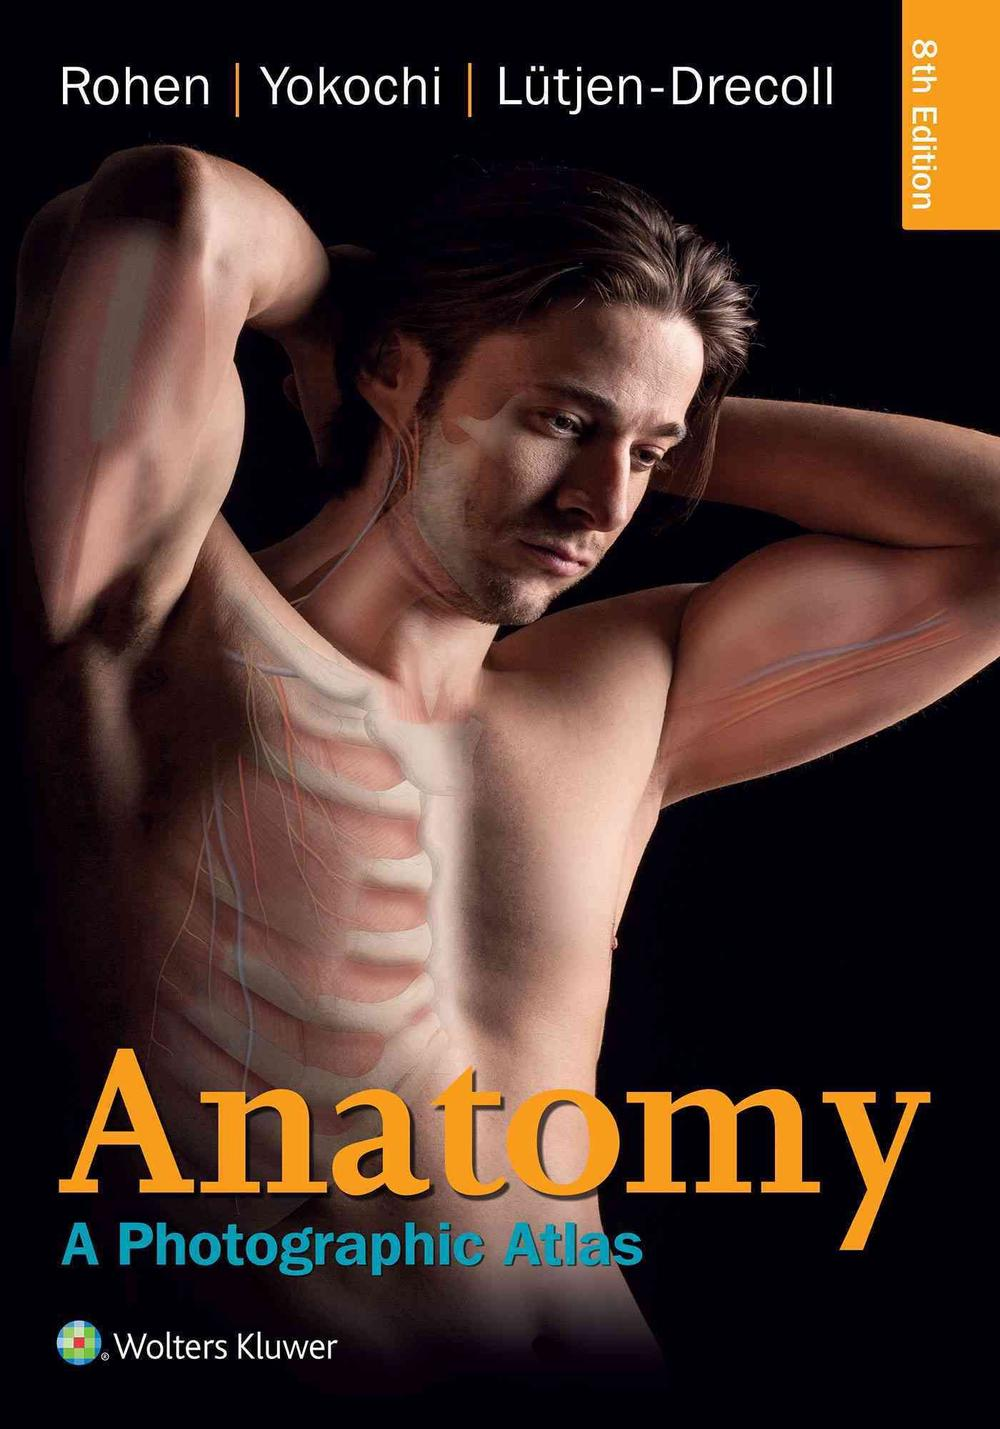 Anatomy: A Photographic Atlas, 8th Edition by Johannes W. Rohen ...